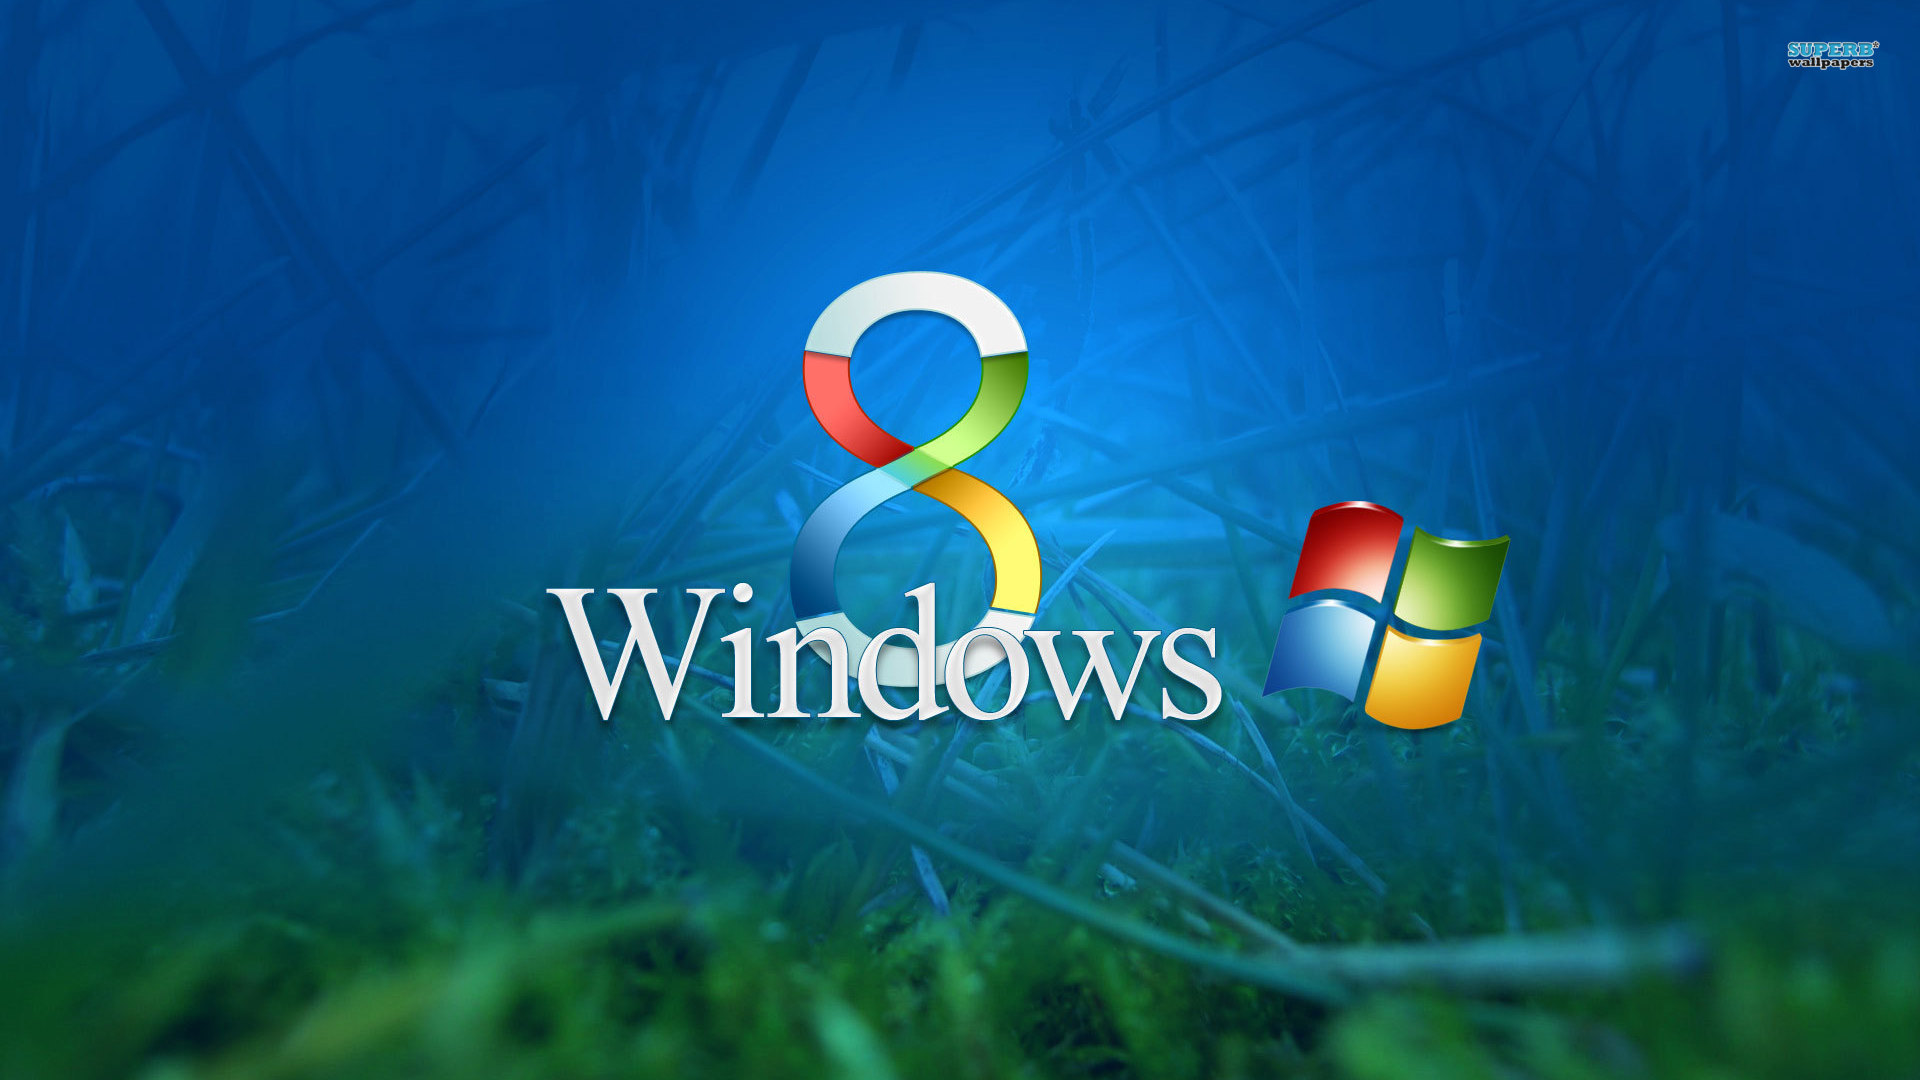 Free Download Windows 8 6390 1920x1080 1920x1080 For Your